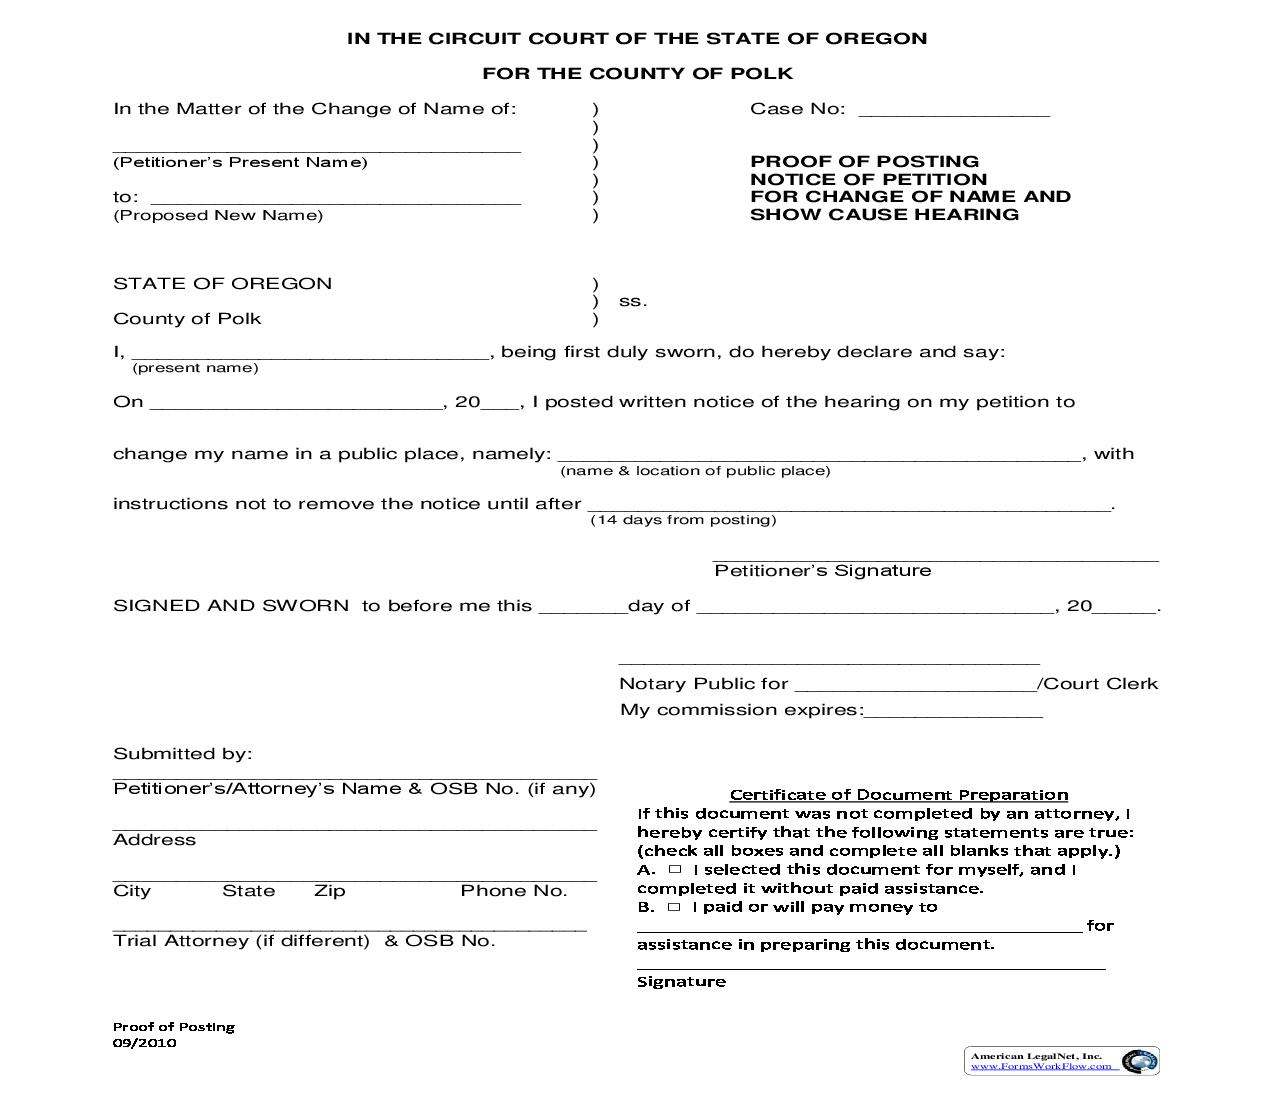 Proof Of Posting Notice Of Petition For Change Of Name And Show Cause Hearing | Pdf Fpdf Doc Docx | Oregon